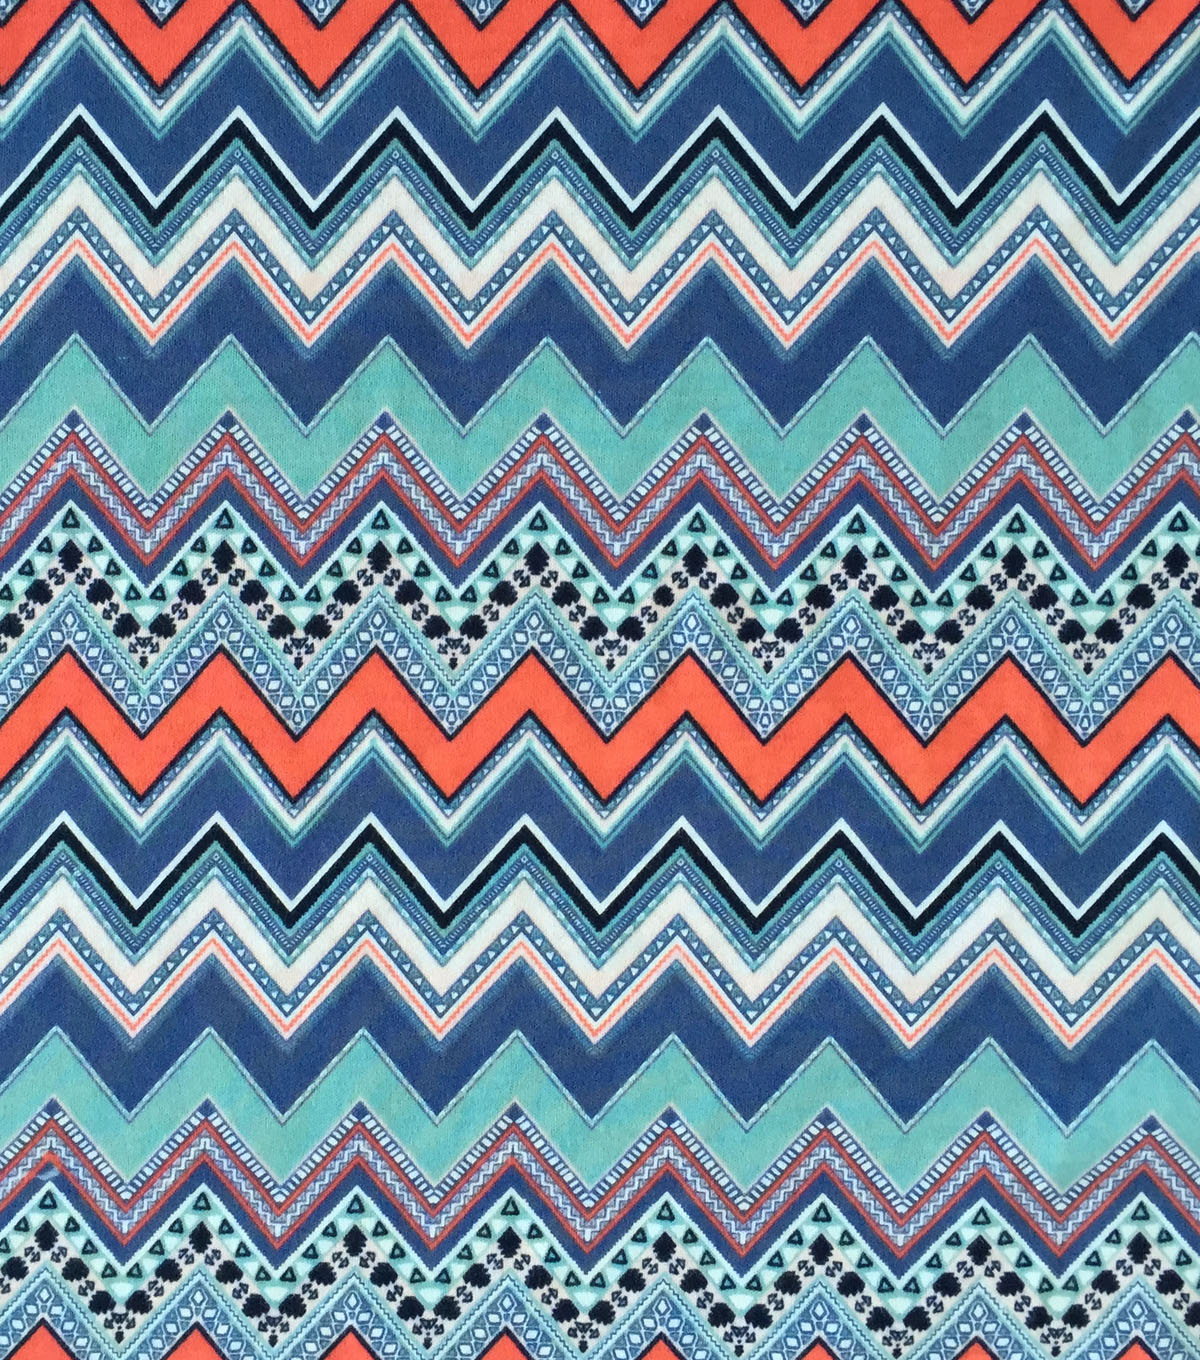 Doodles Collection Fabric -  Majestic Interlock Chevron Blue